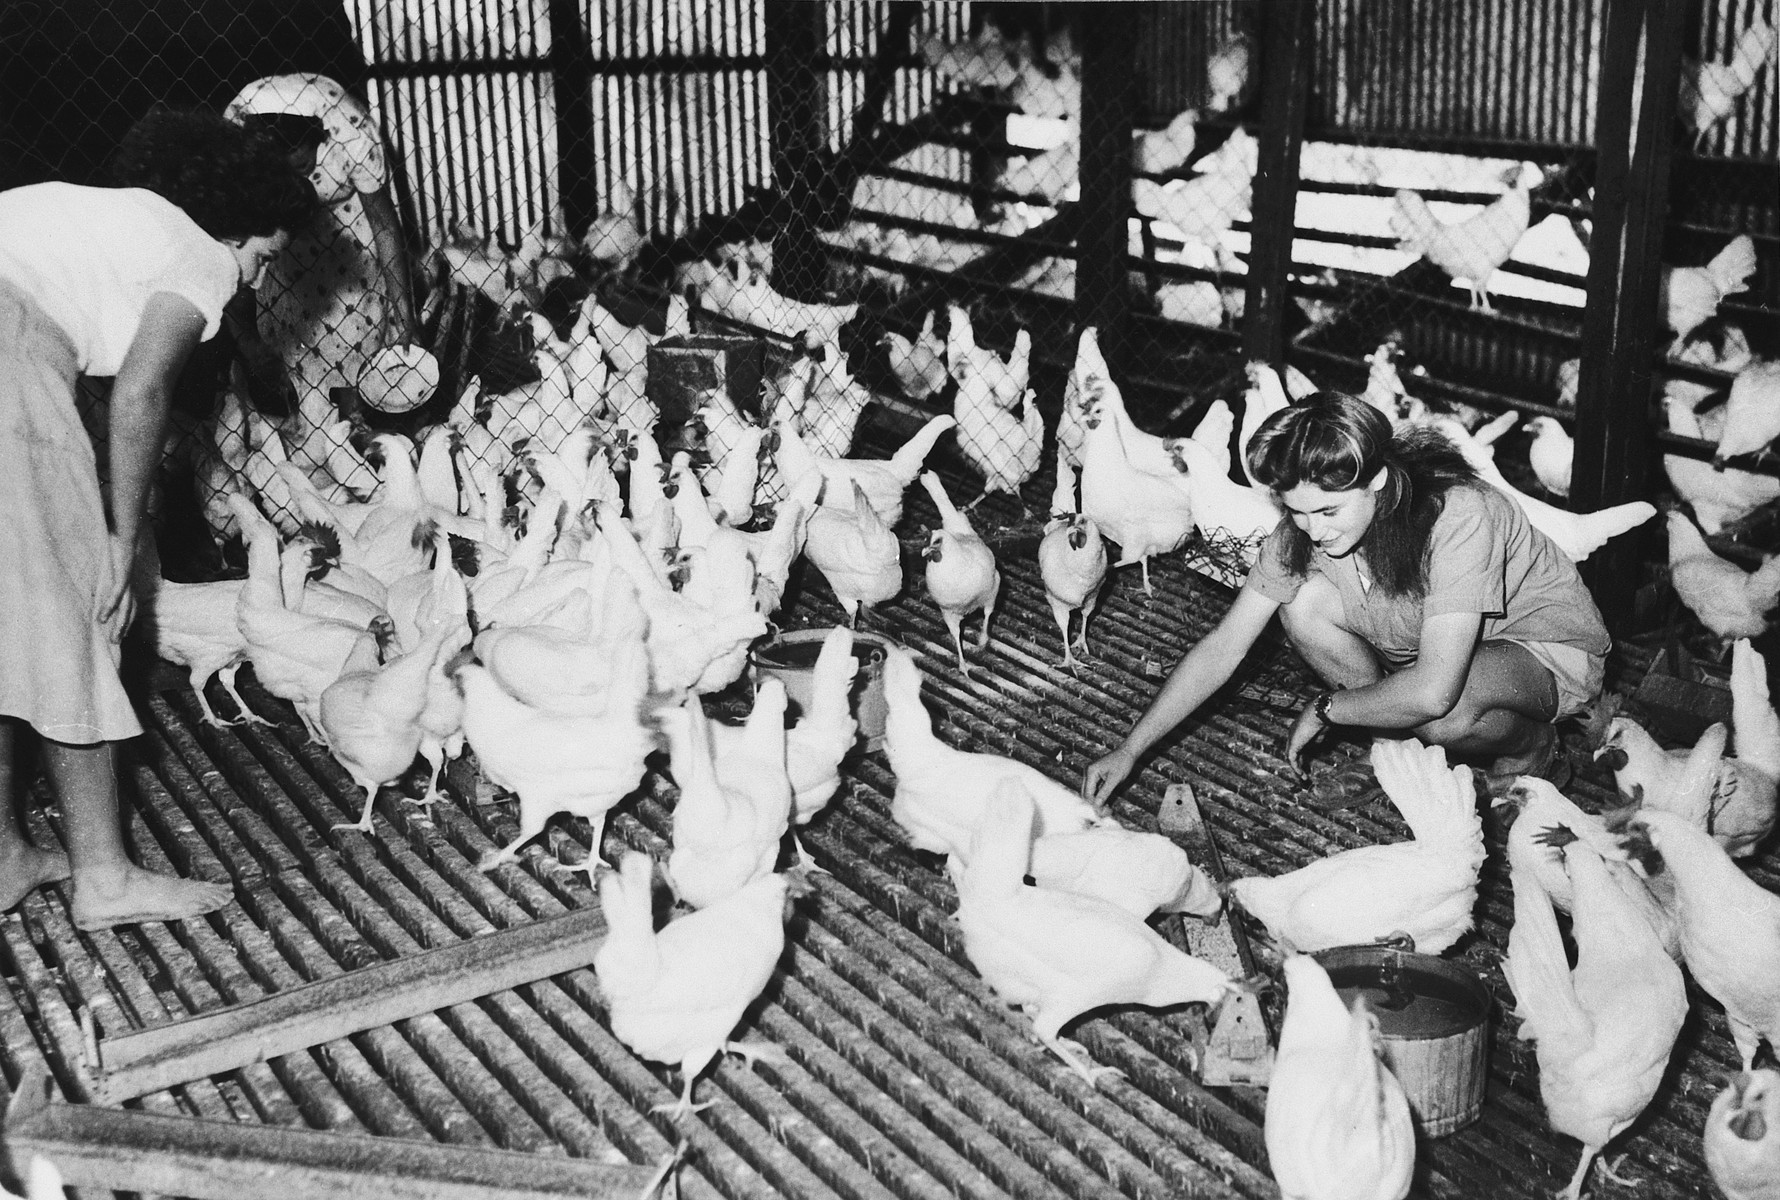 A new immigrant to Israel feeds chickens in a hen house in Tel Shachar.